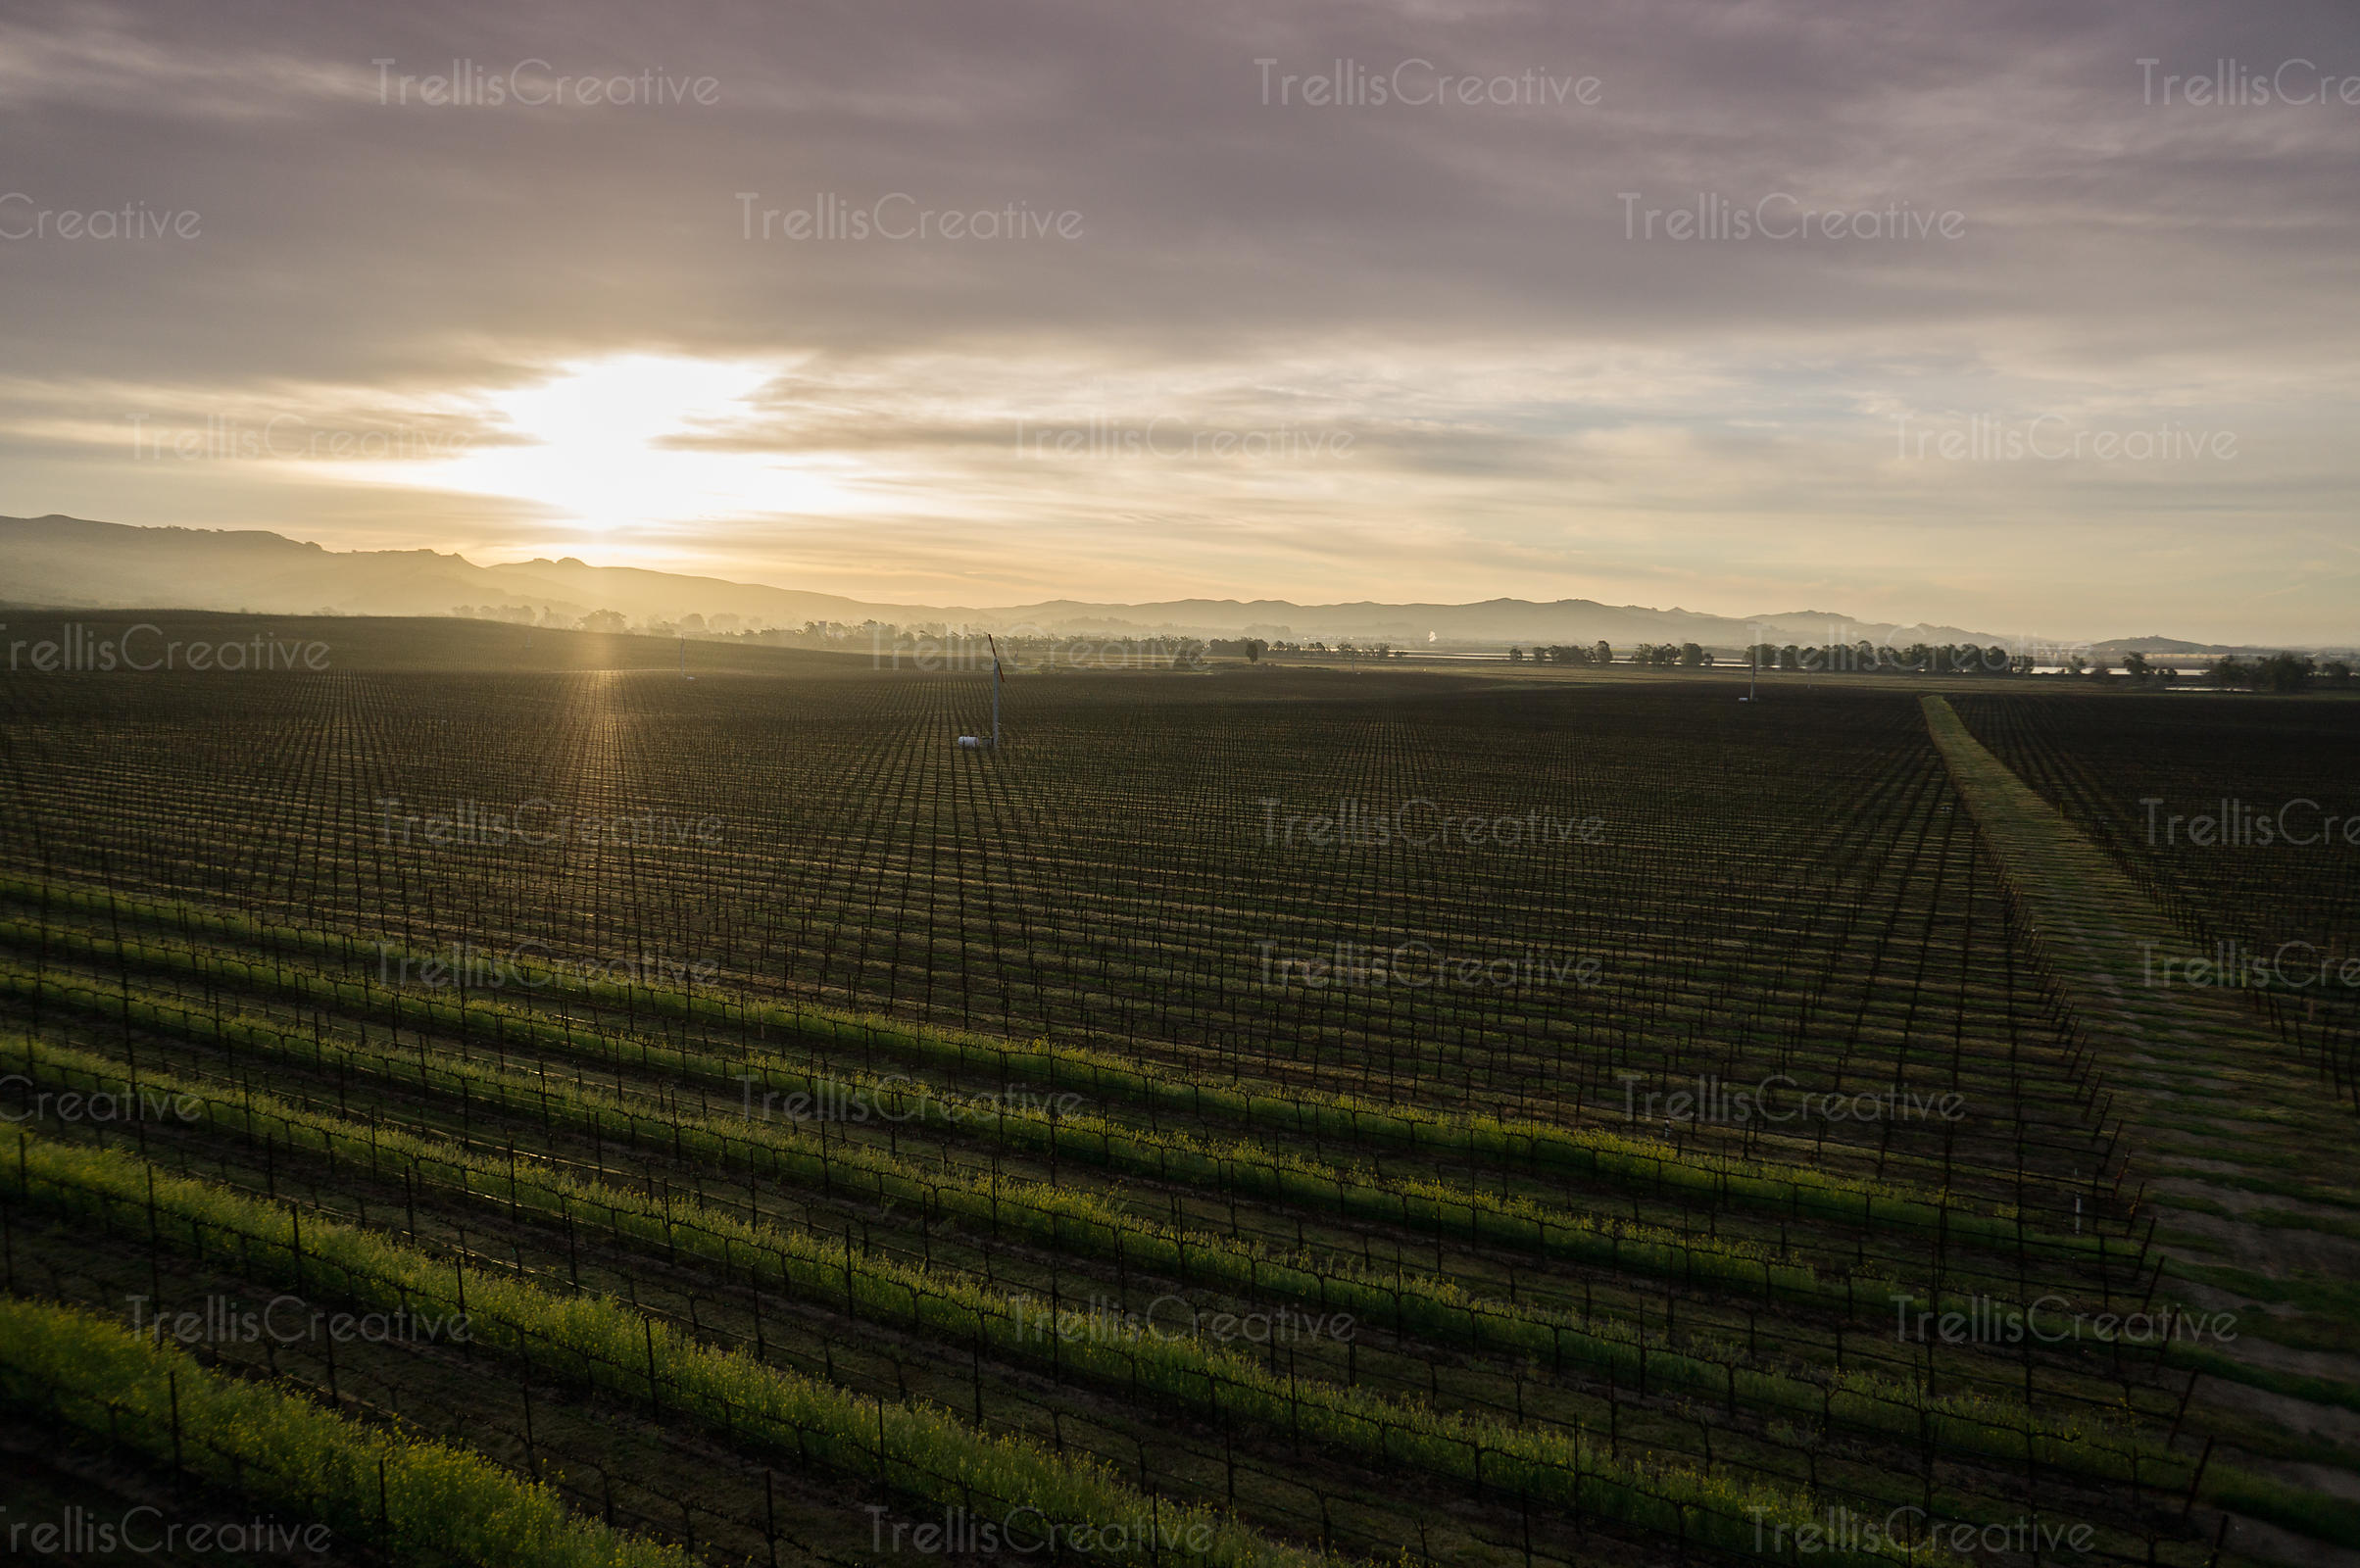 Sun breaking through the clouds over the vineyard at sunrise